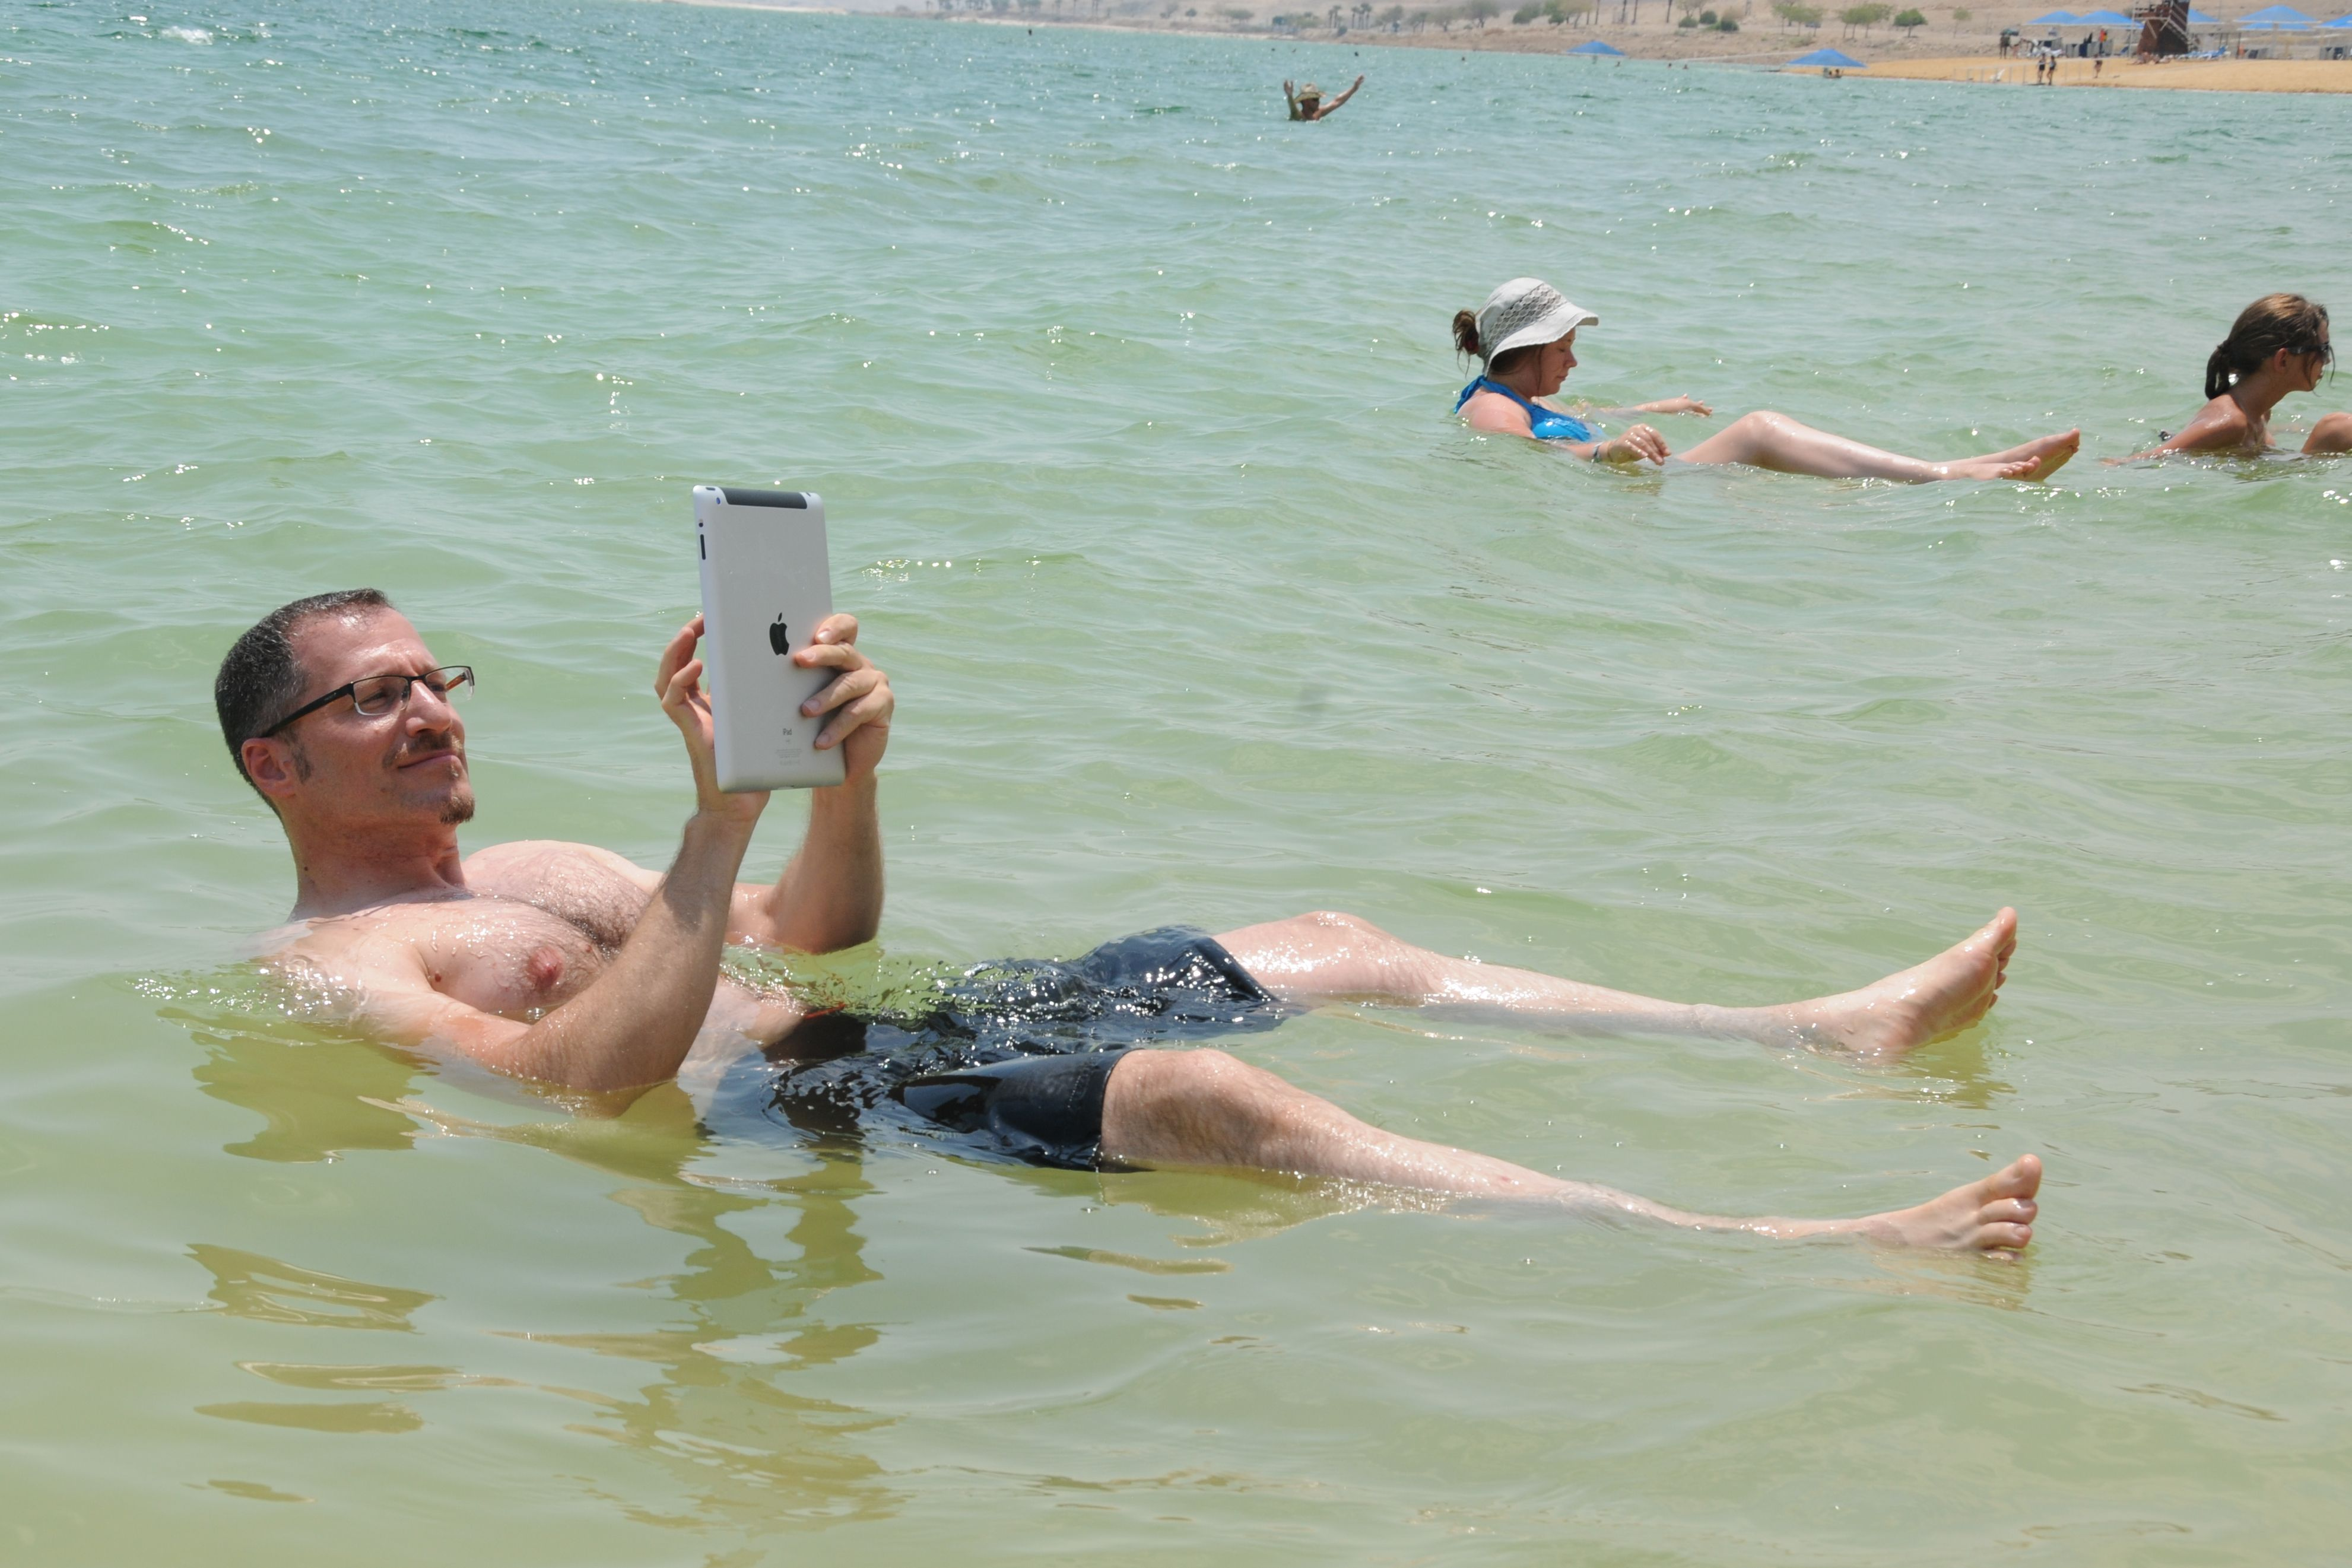 Surfing at the dead sea.